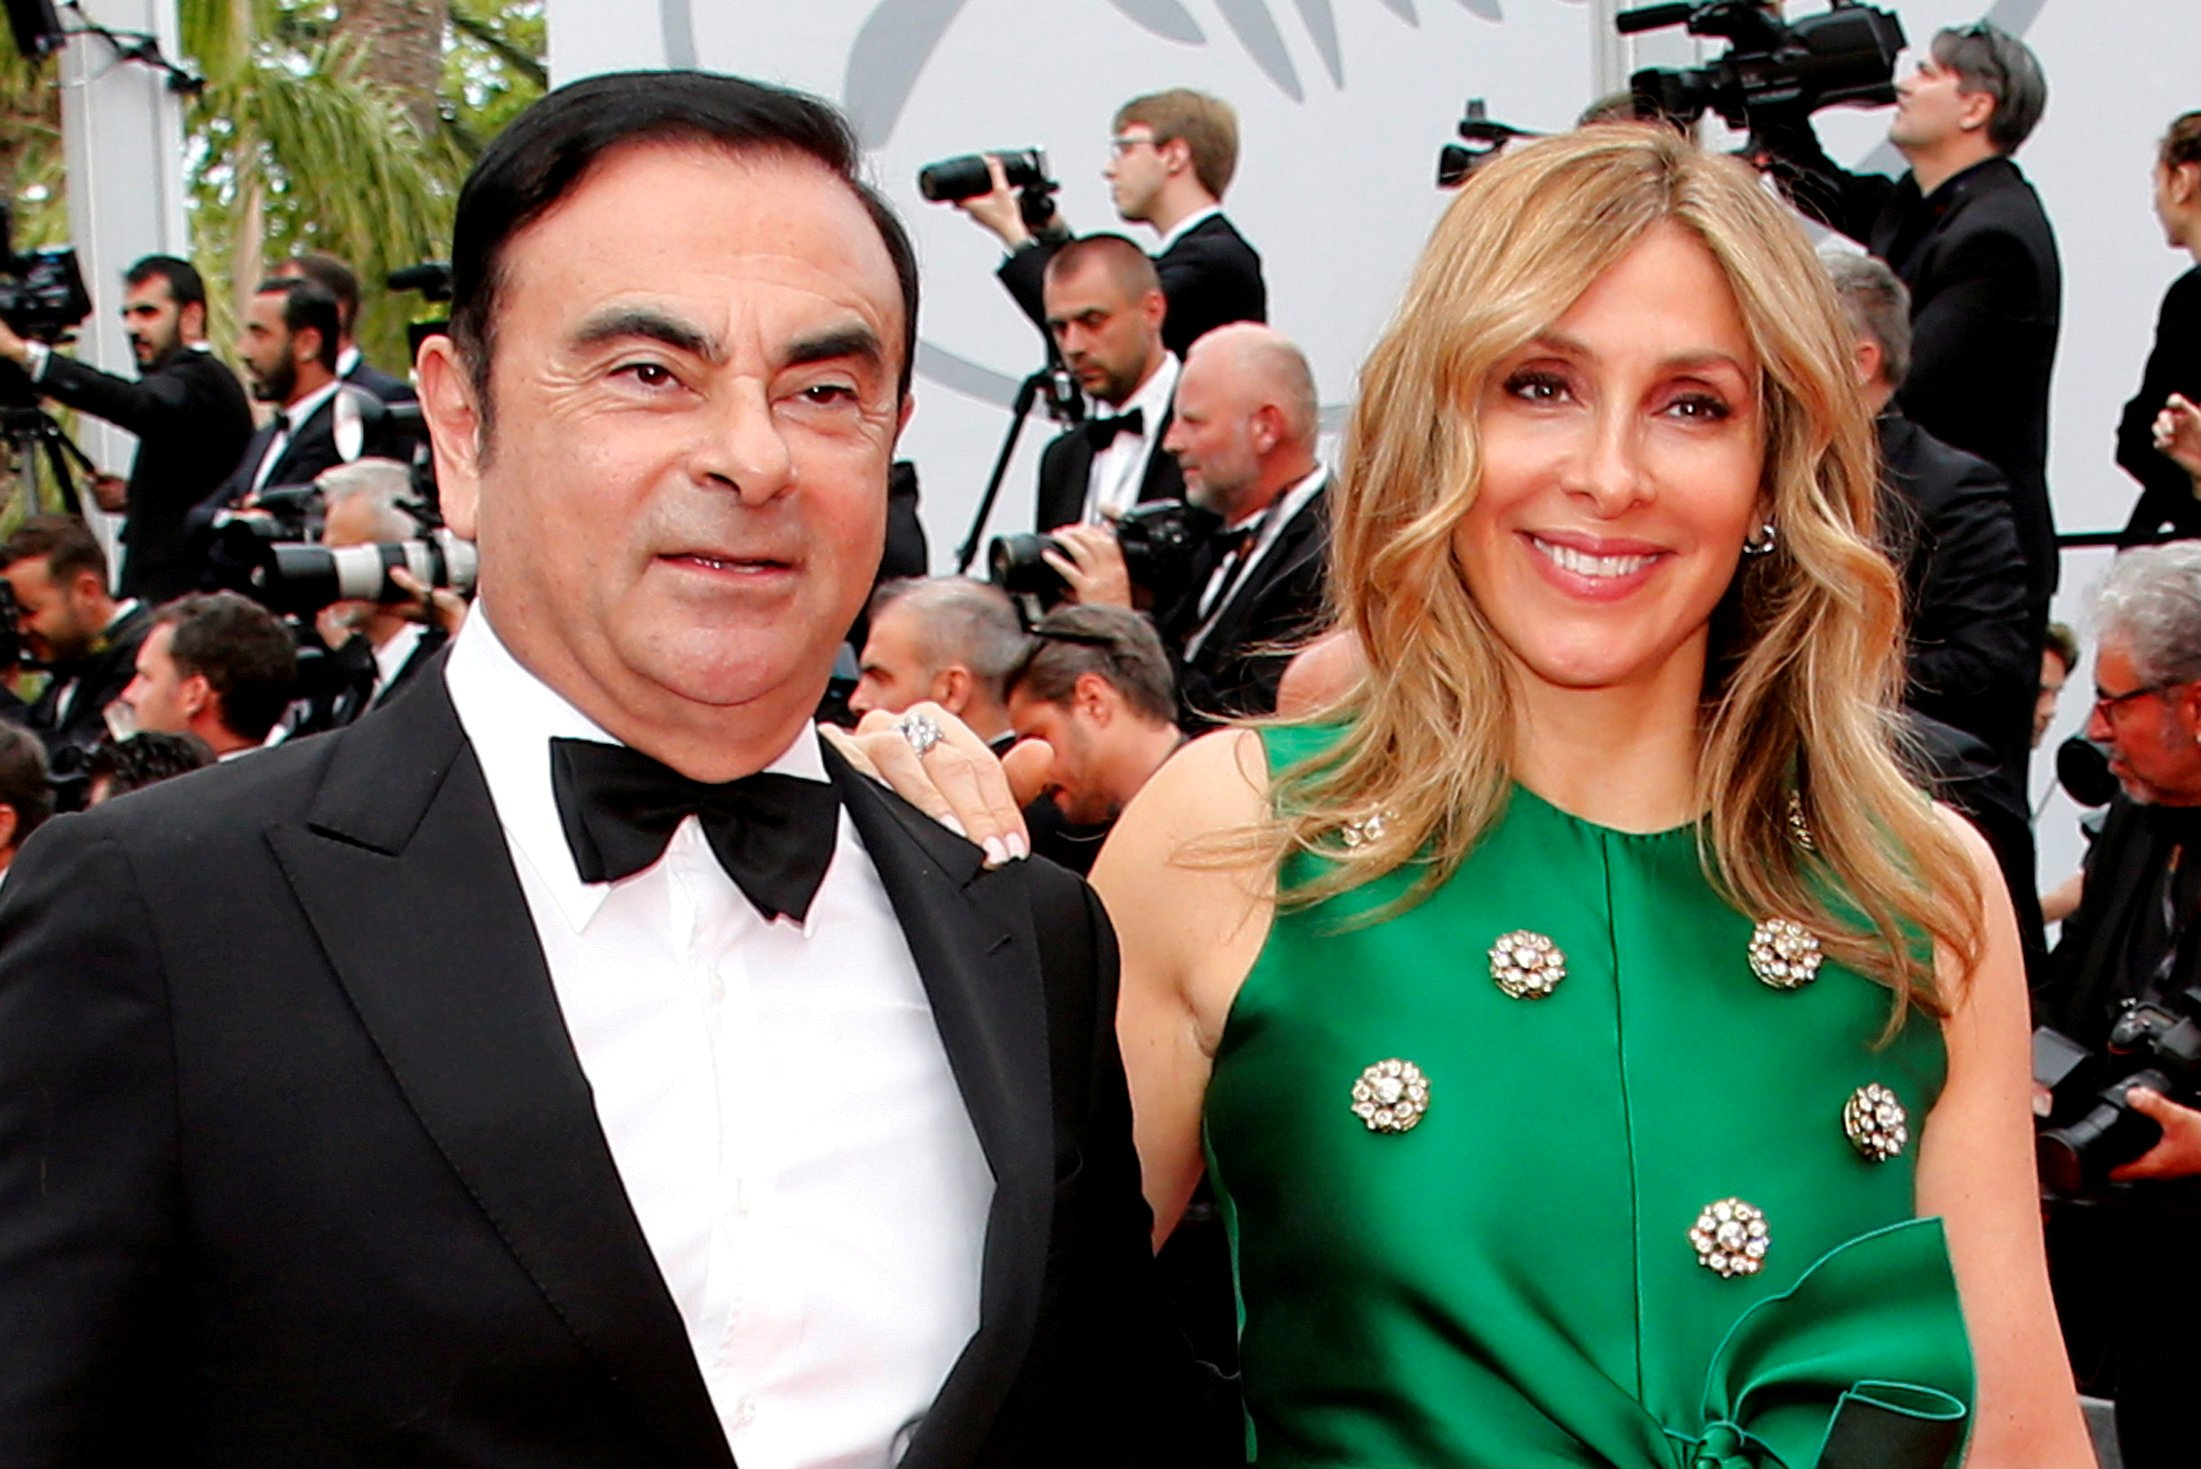 FILE PHOTO: 70th Cannes Film Festival – Screening of the film